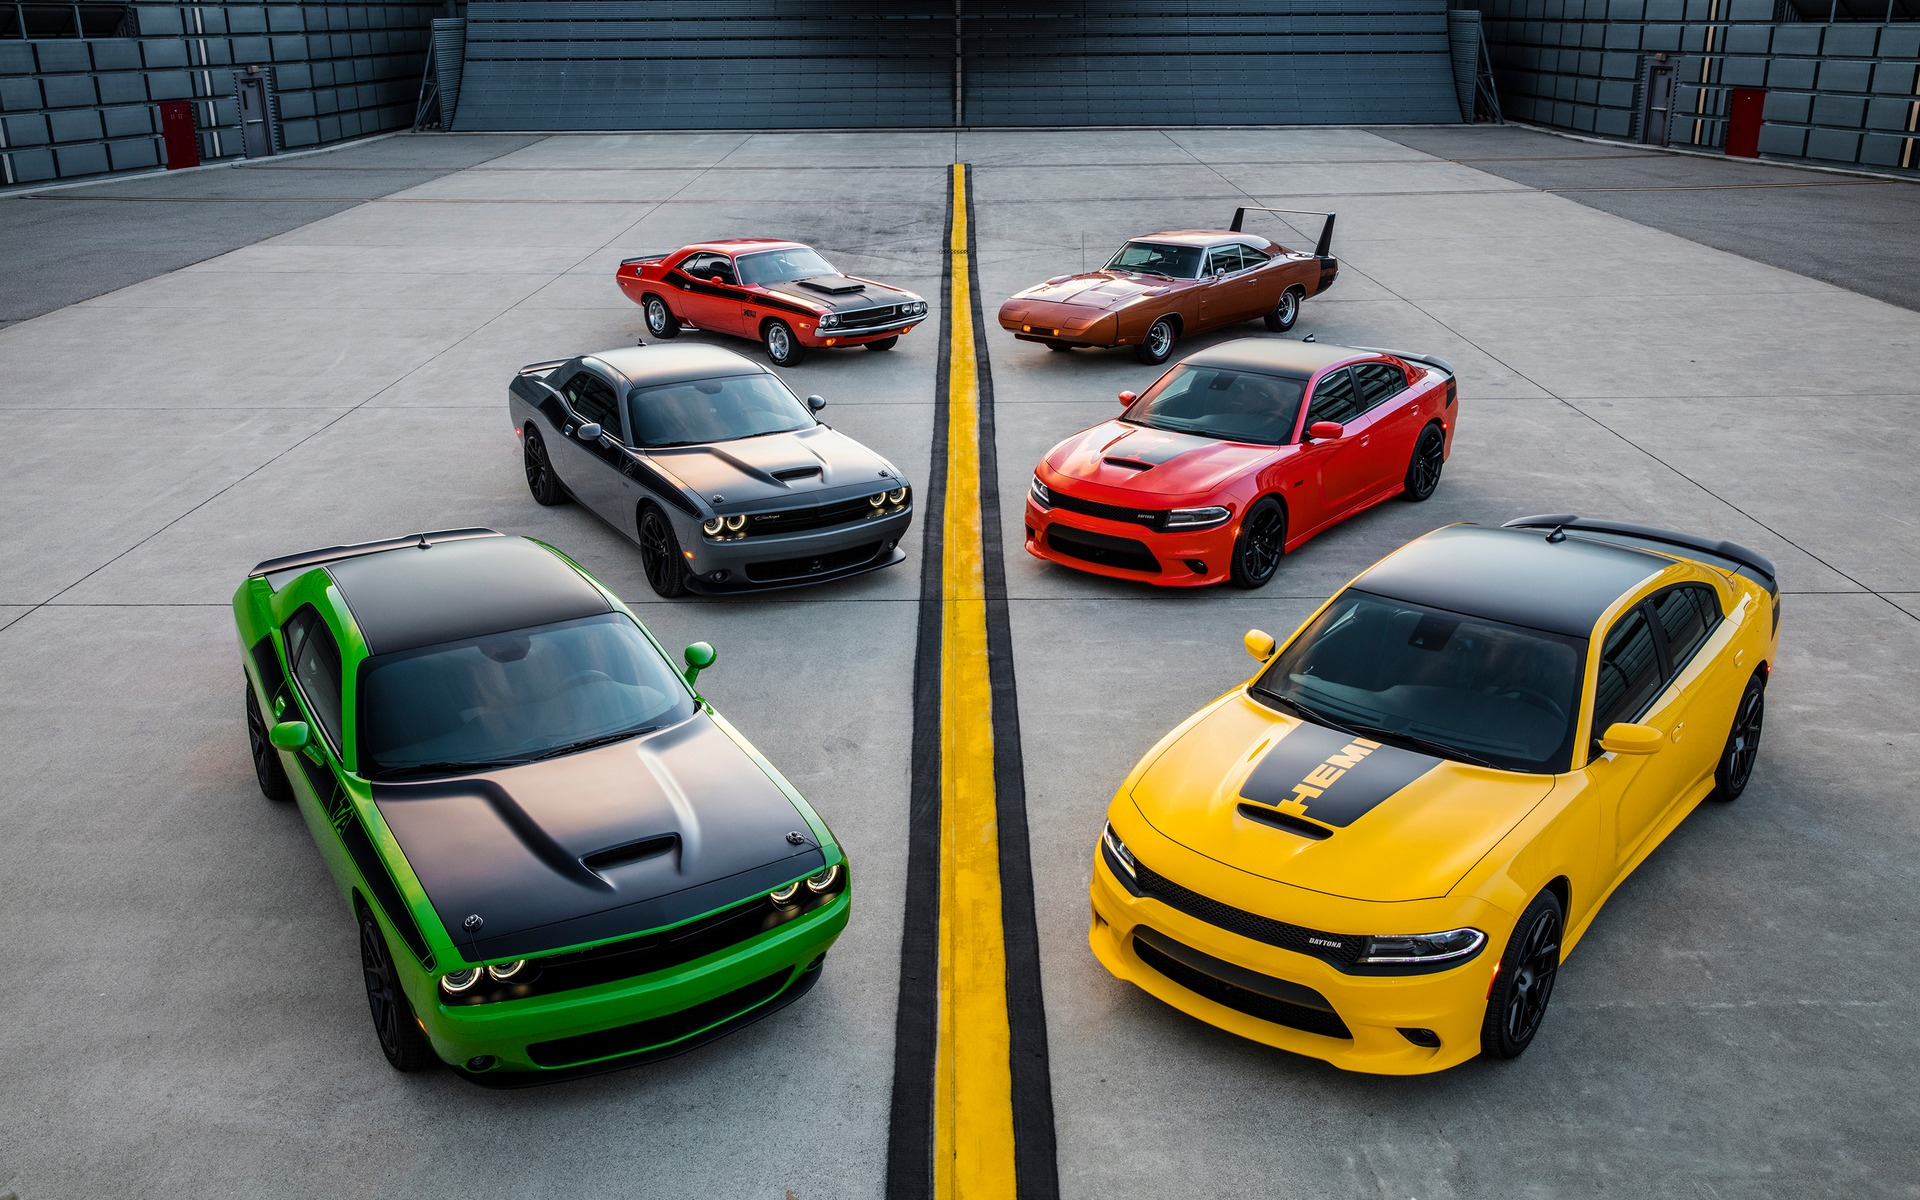 25 New New Dodge Cars For 2020 Review by New Dodge Cars For 2020